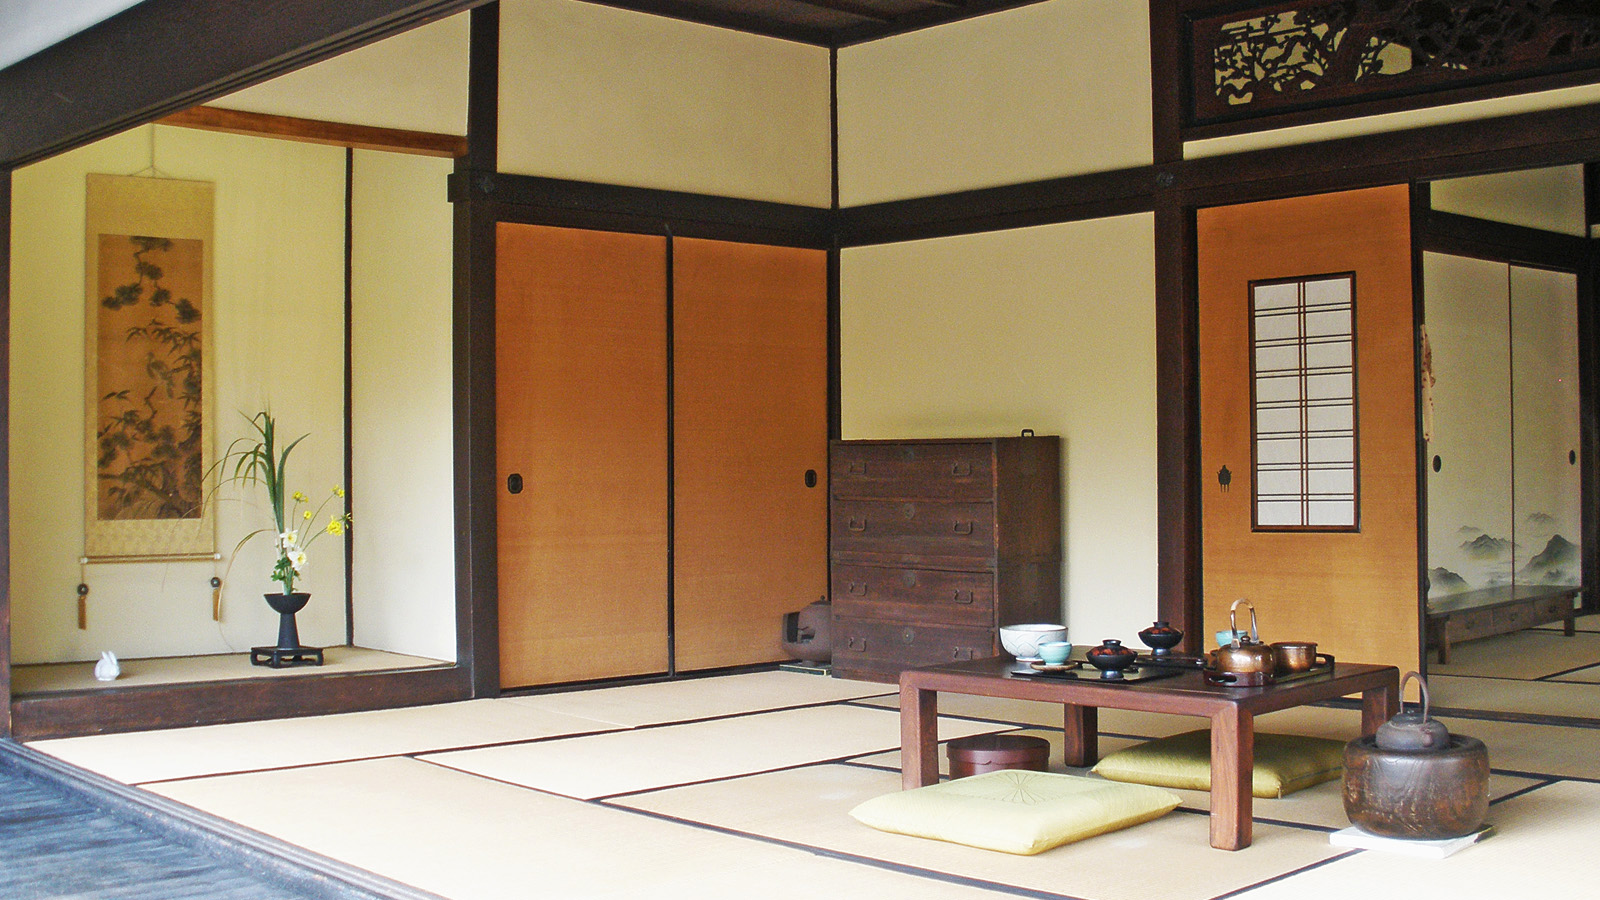 traditional japanese room by fritters on deviantart